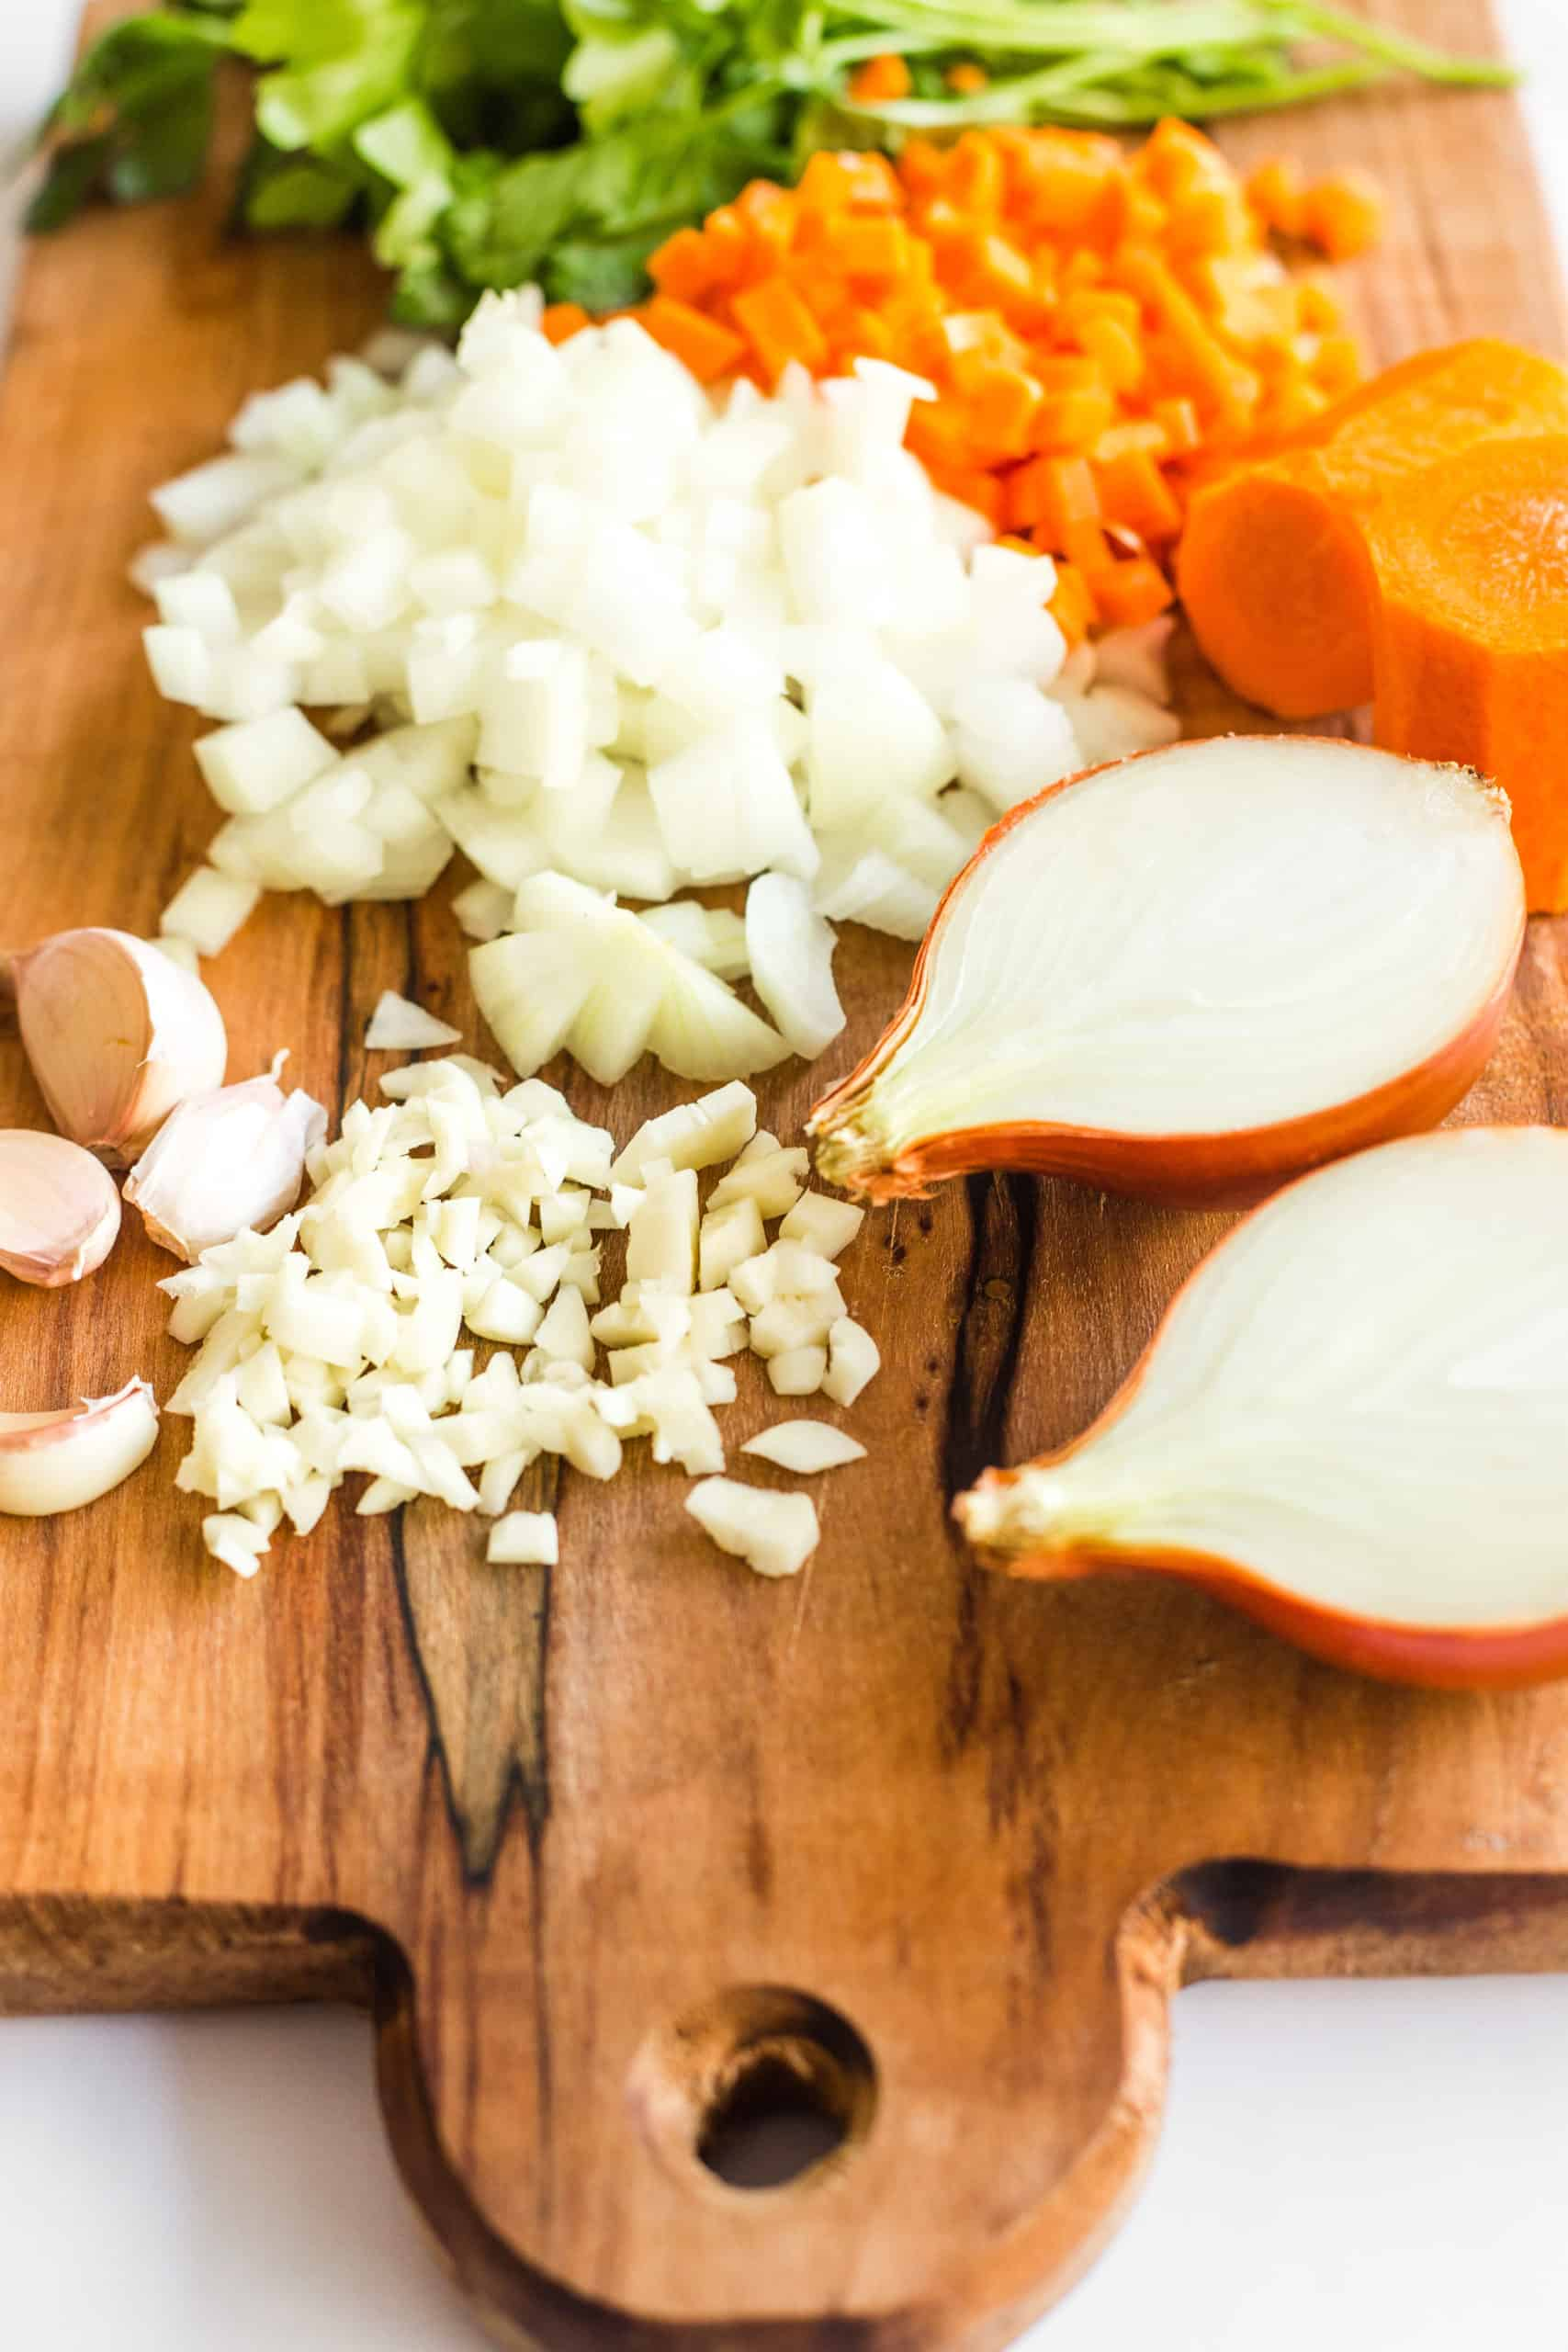 Ingredients for slow cooker lentil curry on a wooden chopping board